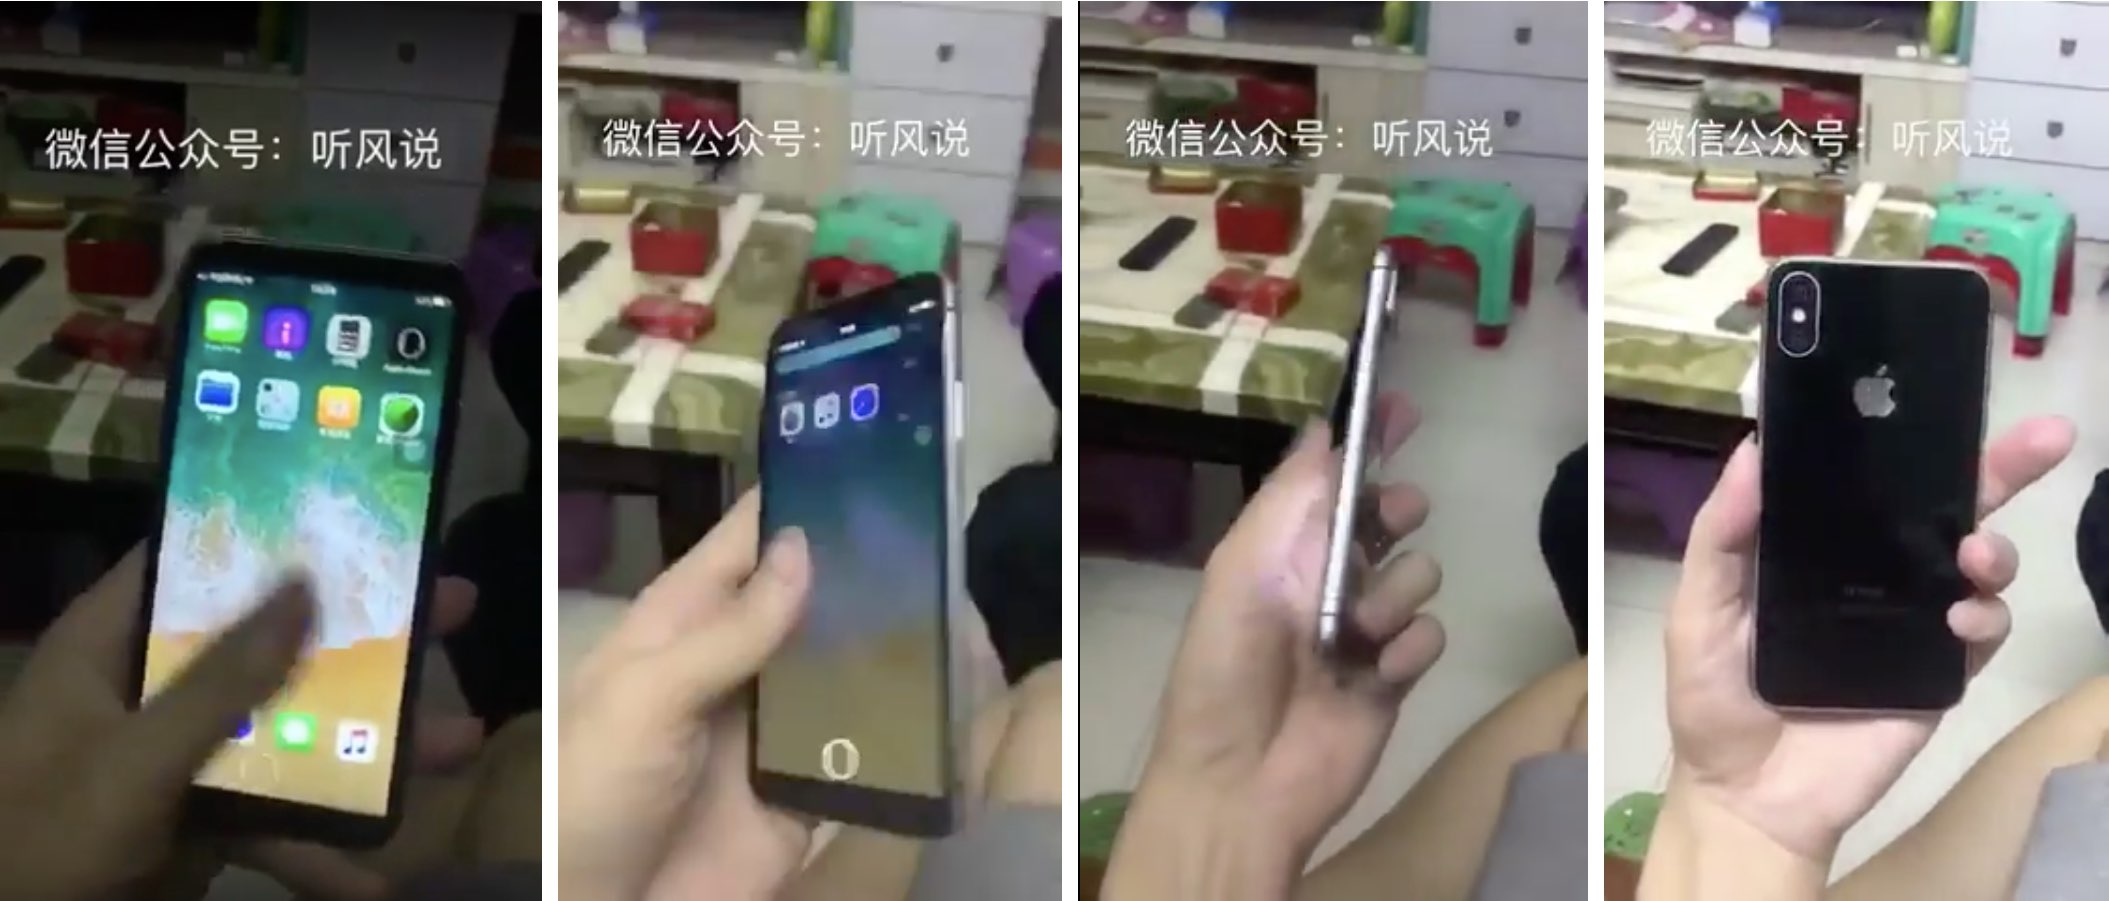 Check out this short video of a working iPhone 8 clone from